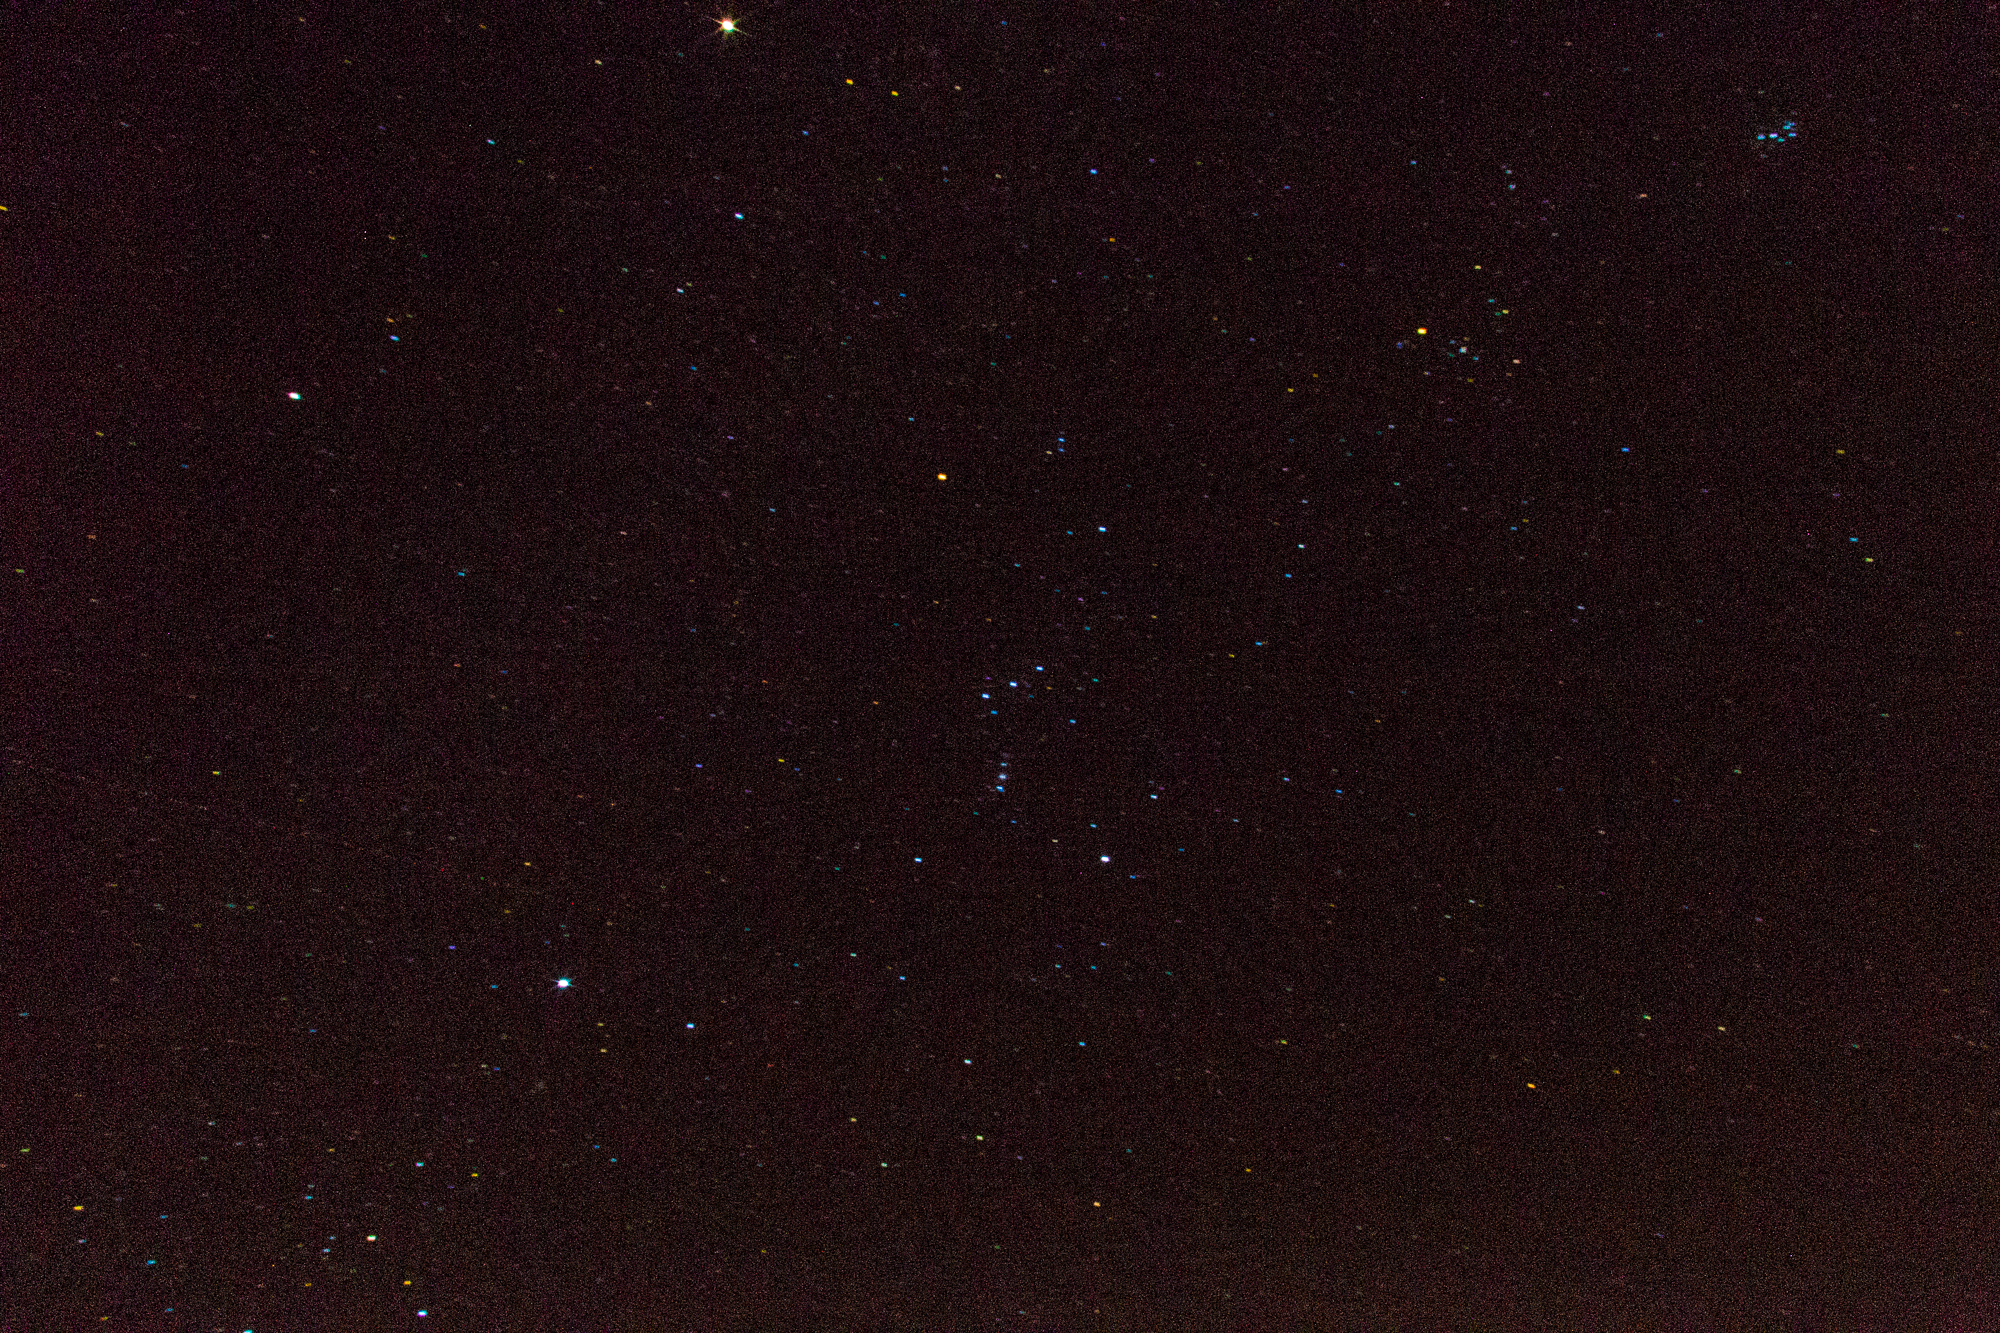 Orion as seen from the desert